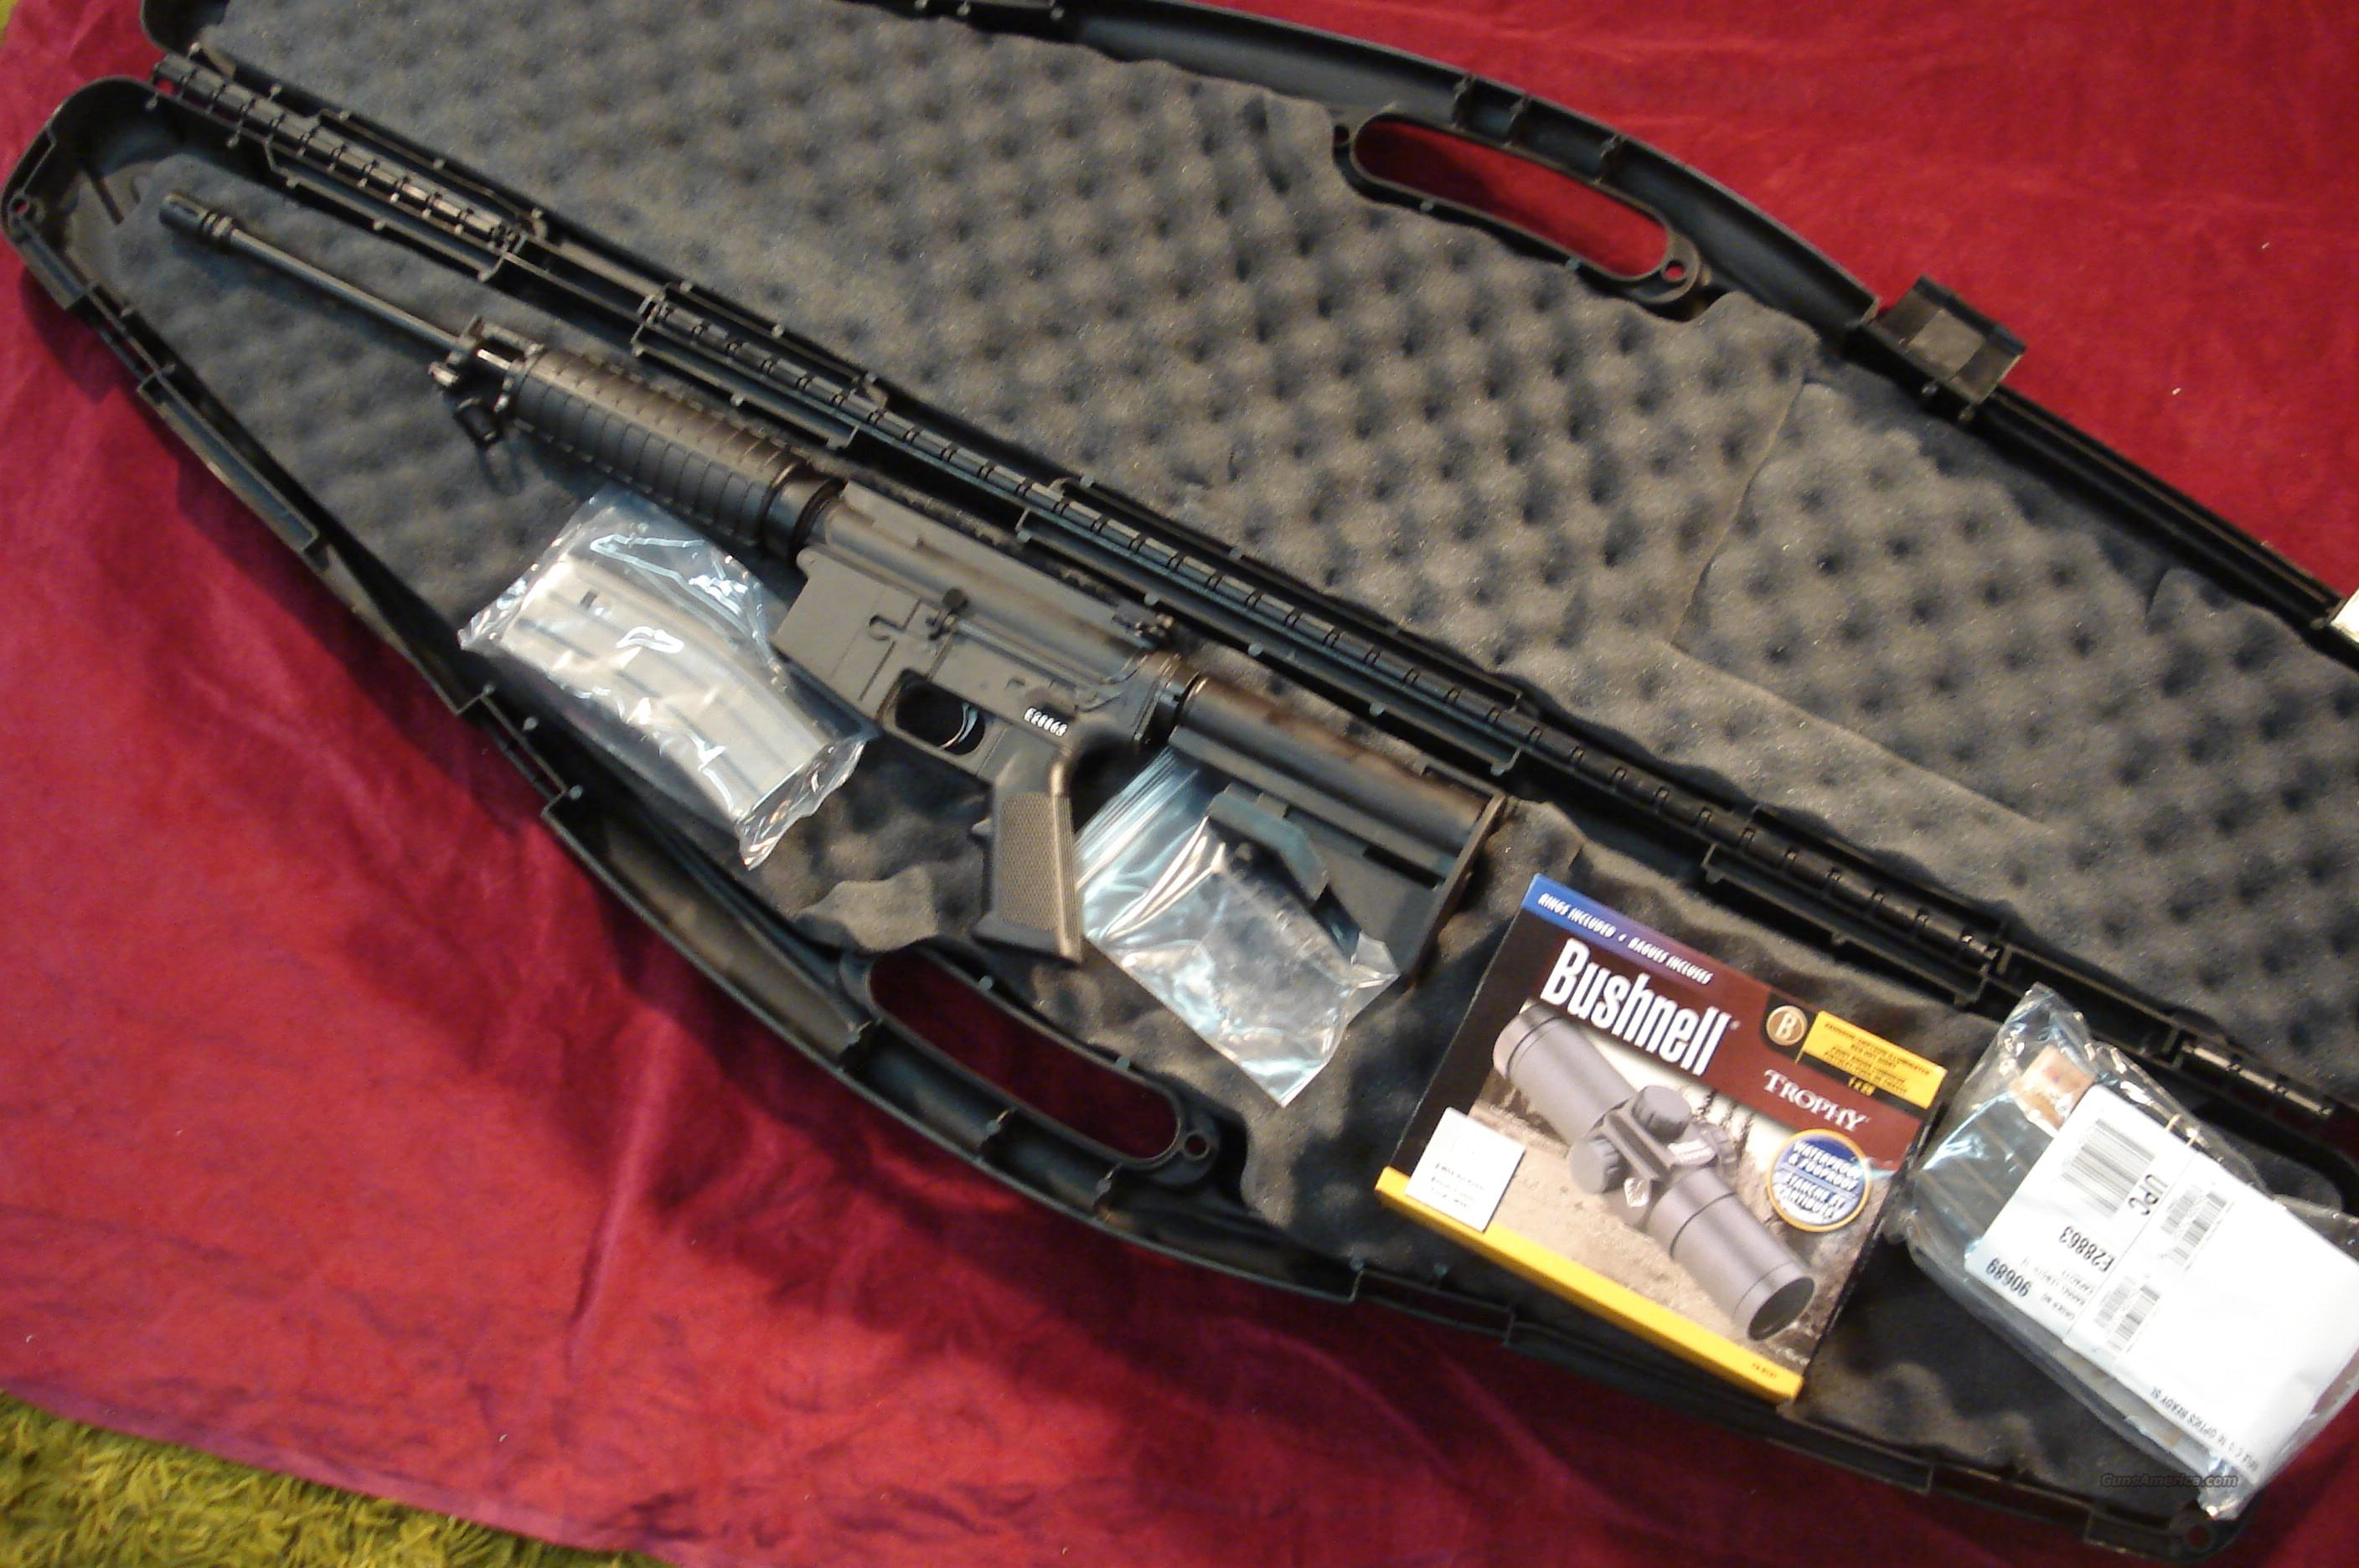 BUSHMASTER CARBON 15 223CAL. WITH RED DOT SCOPE NEW  Guns > Rifles > Bushmaster Rifles > Complete Rifles